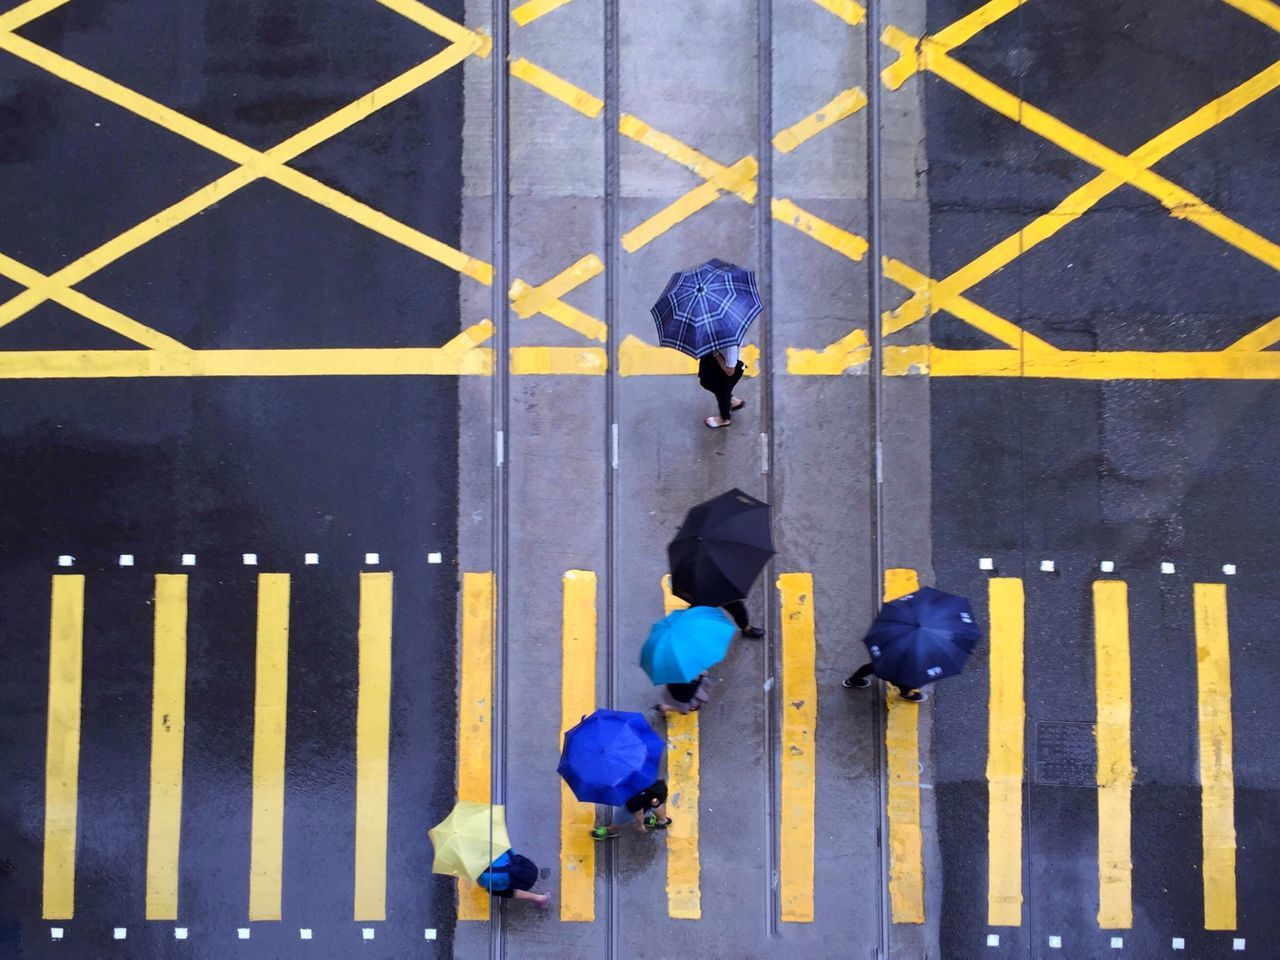 Multi Colored Vibrant Color Weather Rainy Umbrellas Overhead View People Crossing The Street Day City Life Urban Blue Umbrellas Blue And Yellow Outdoors Colorful Pedestrians Walking Pedestrian Crossing Hong Kong Chance Encounters Embrace Urban Life Exploring Style Flying High